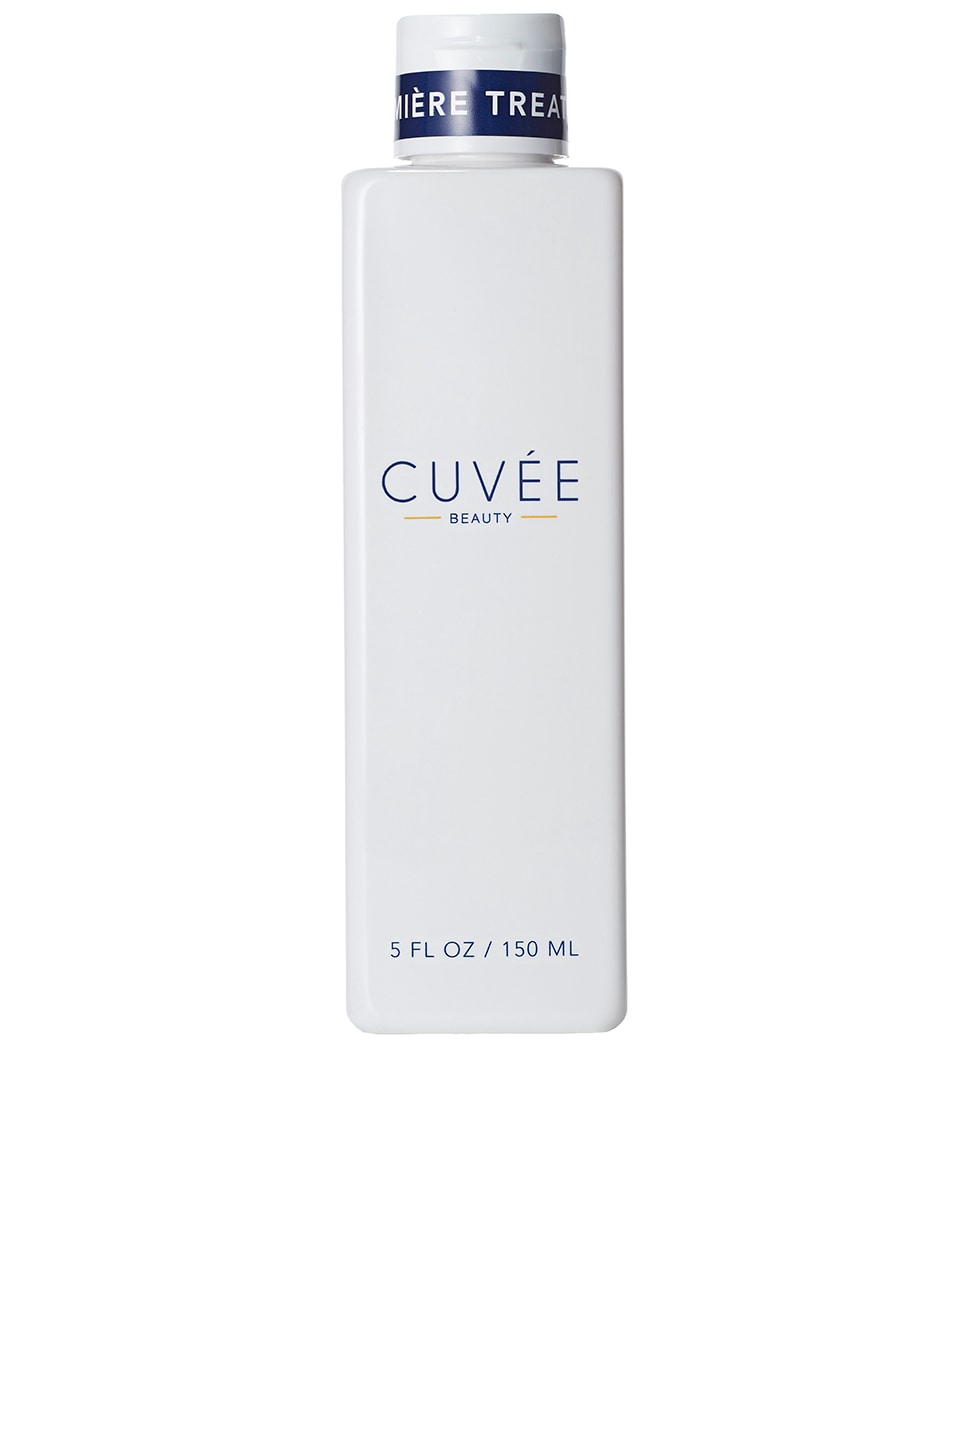 CUVEE Premiere Treatment in Neutral